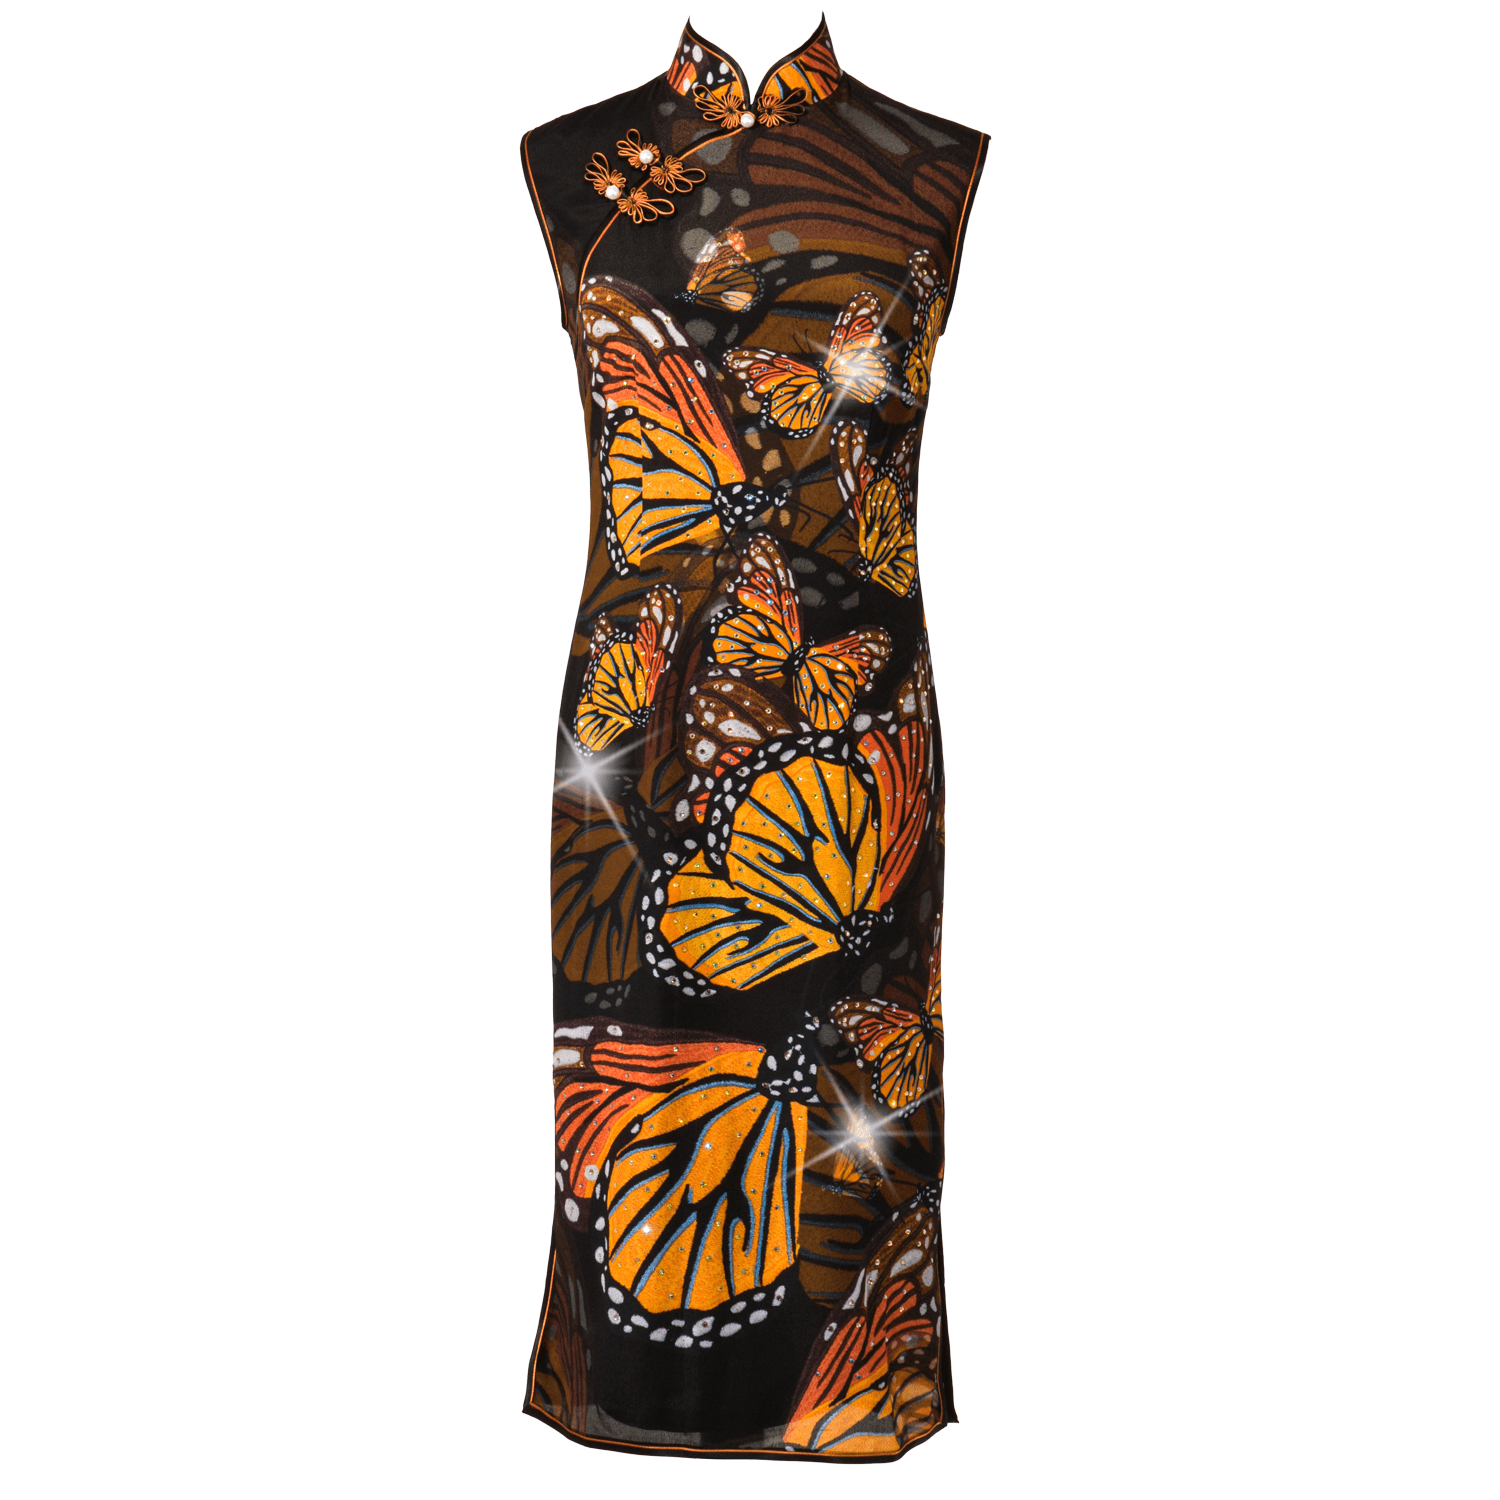 【BUTTERFLY】100% Silk Crystal Cheongsam (Sleeveless / Regular Fit) - THE SPARKLE COLLECTION by GERMAN POOL